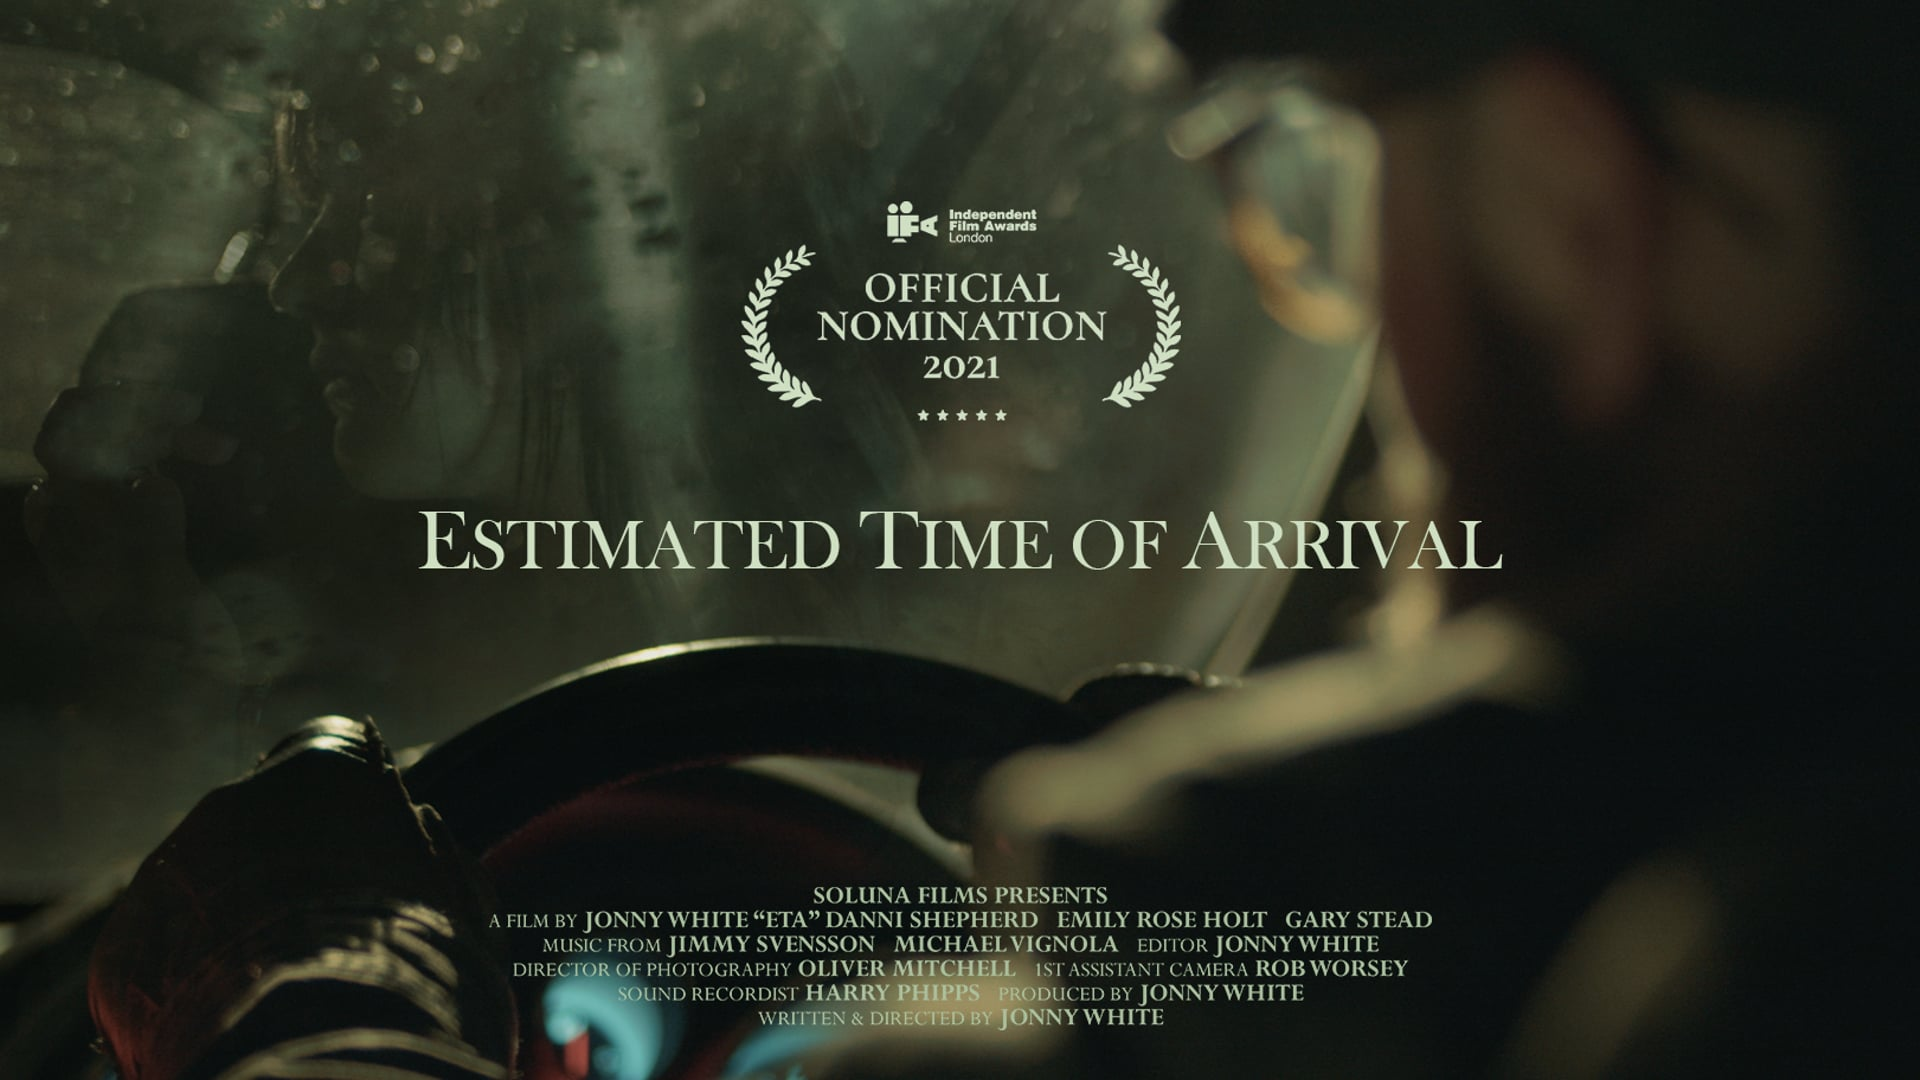 Estimated Time of Arrival